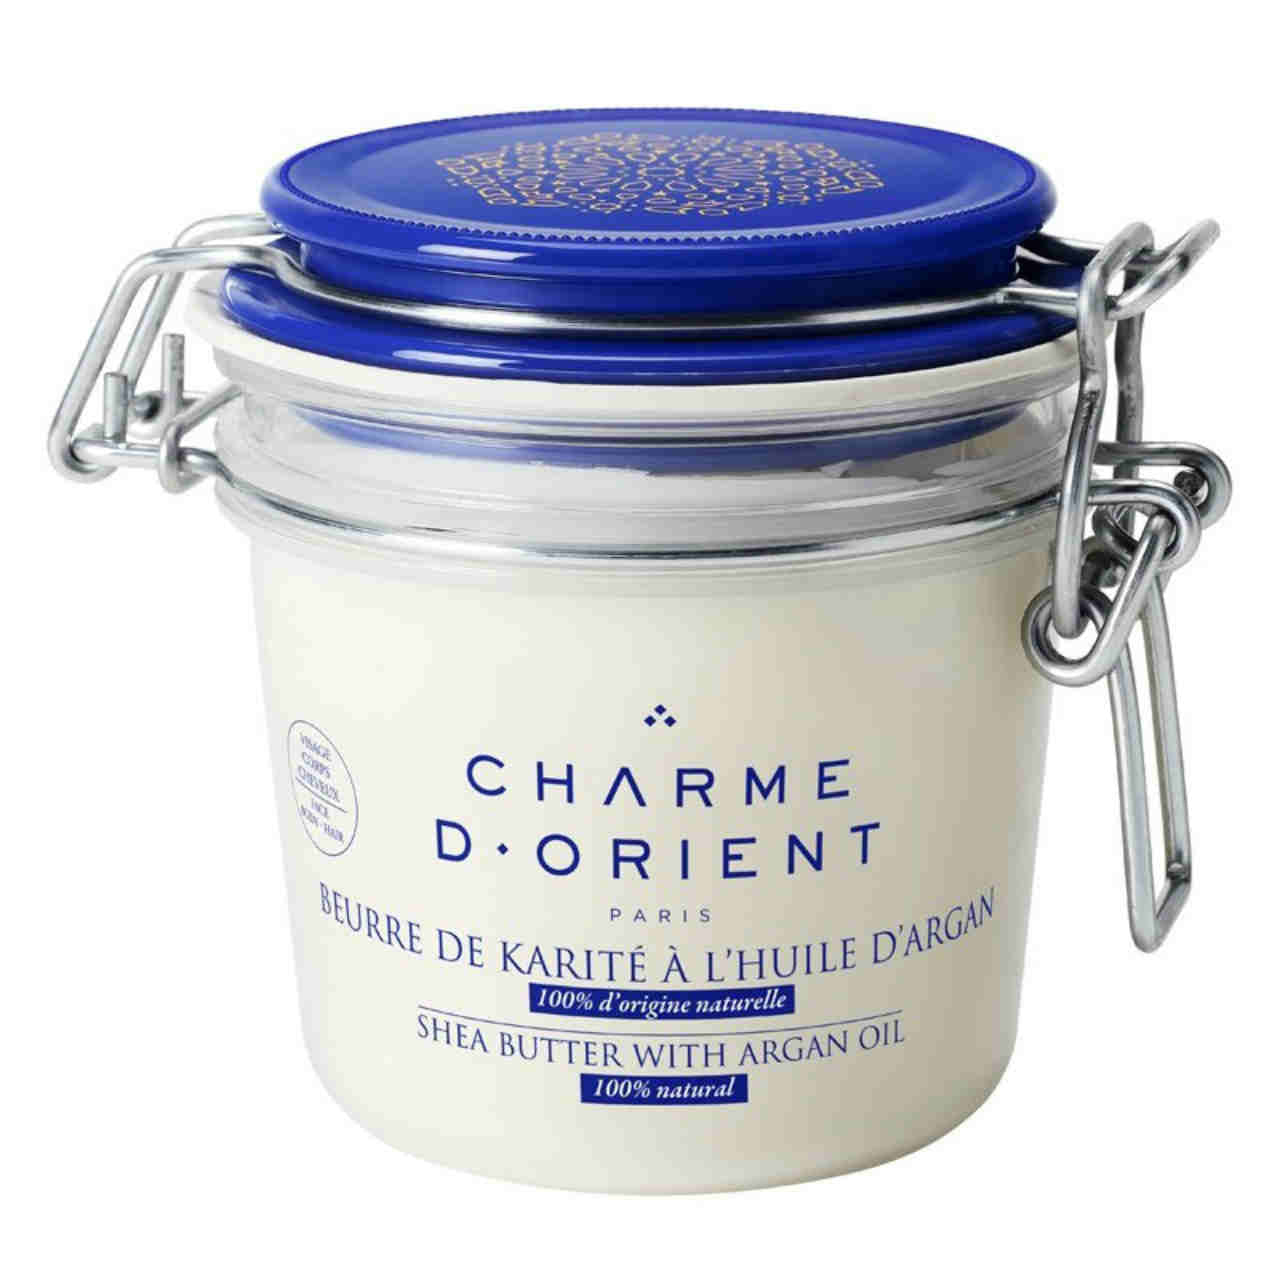 CHARME D'ORIENT Shea Butter with Argan Oil - Unscented